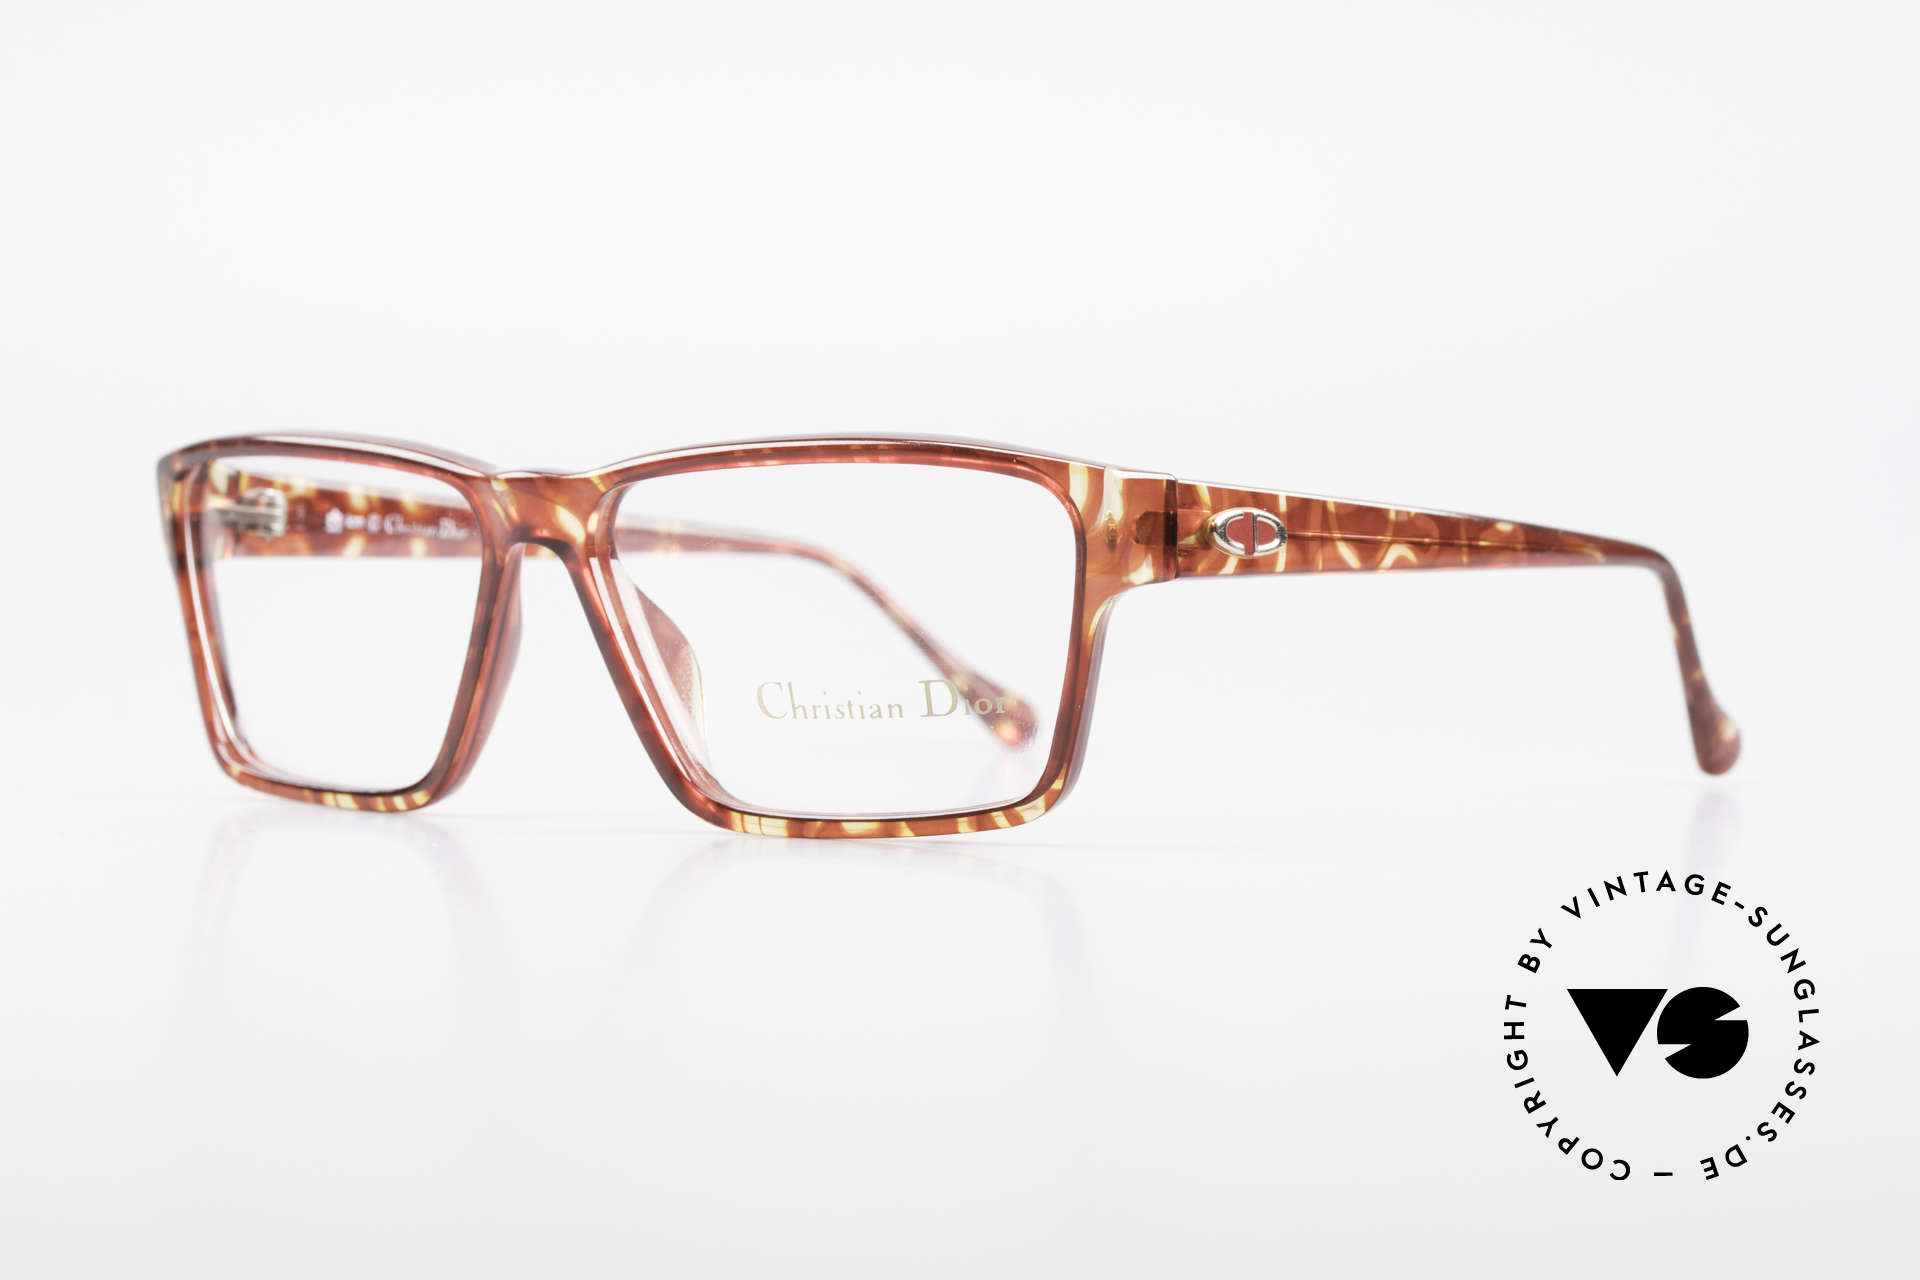 Christian Dior 2628 Old 80's Optyl Frame Unisex, highest comfort thanks to brilliant OPTYL material, Made for Men and Women